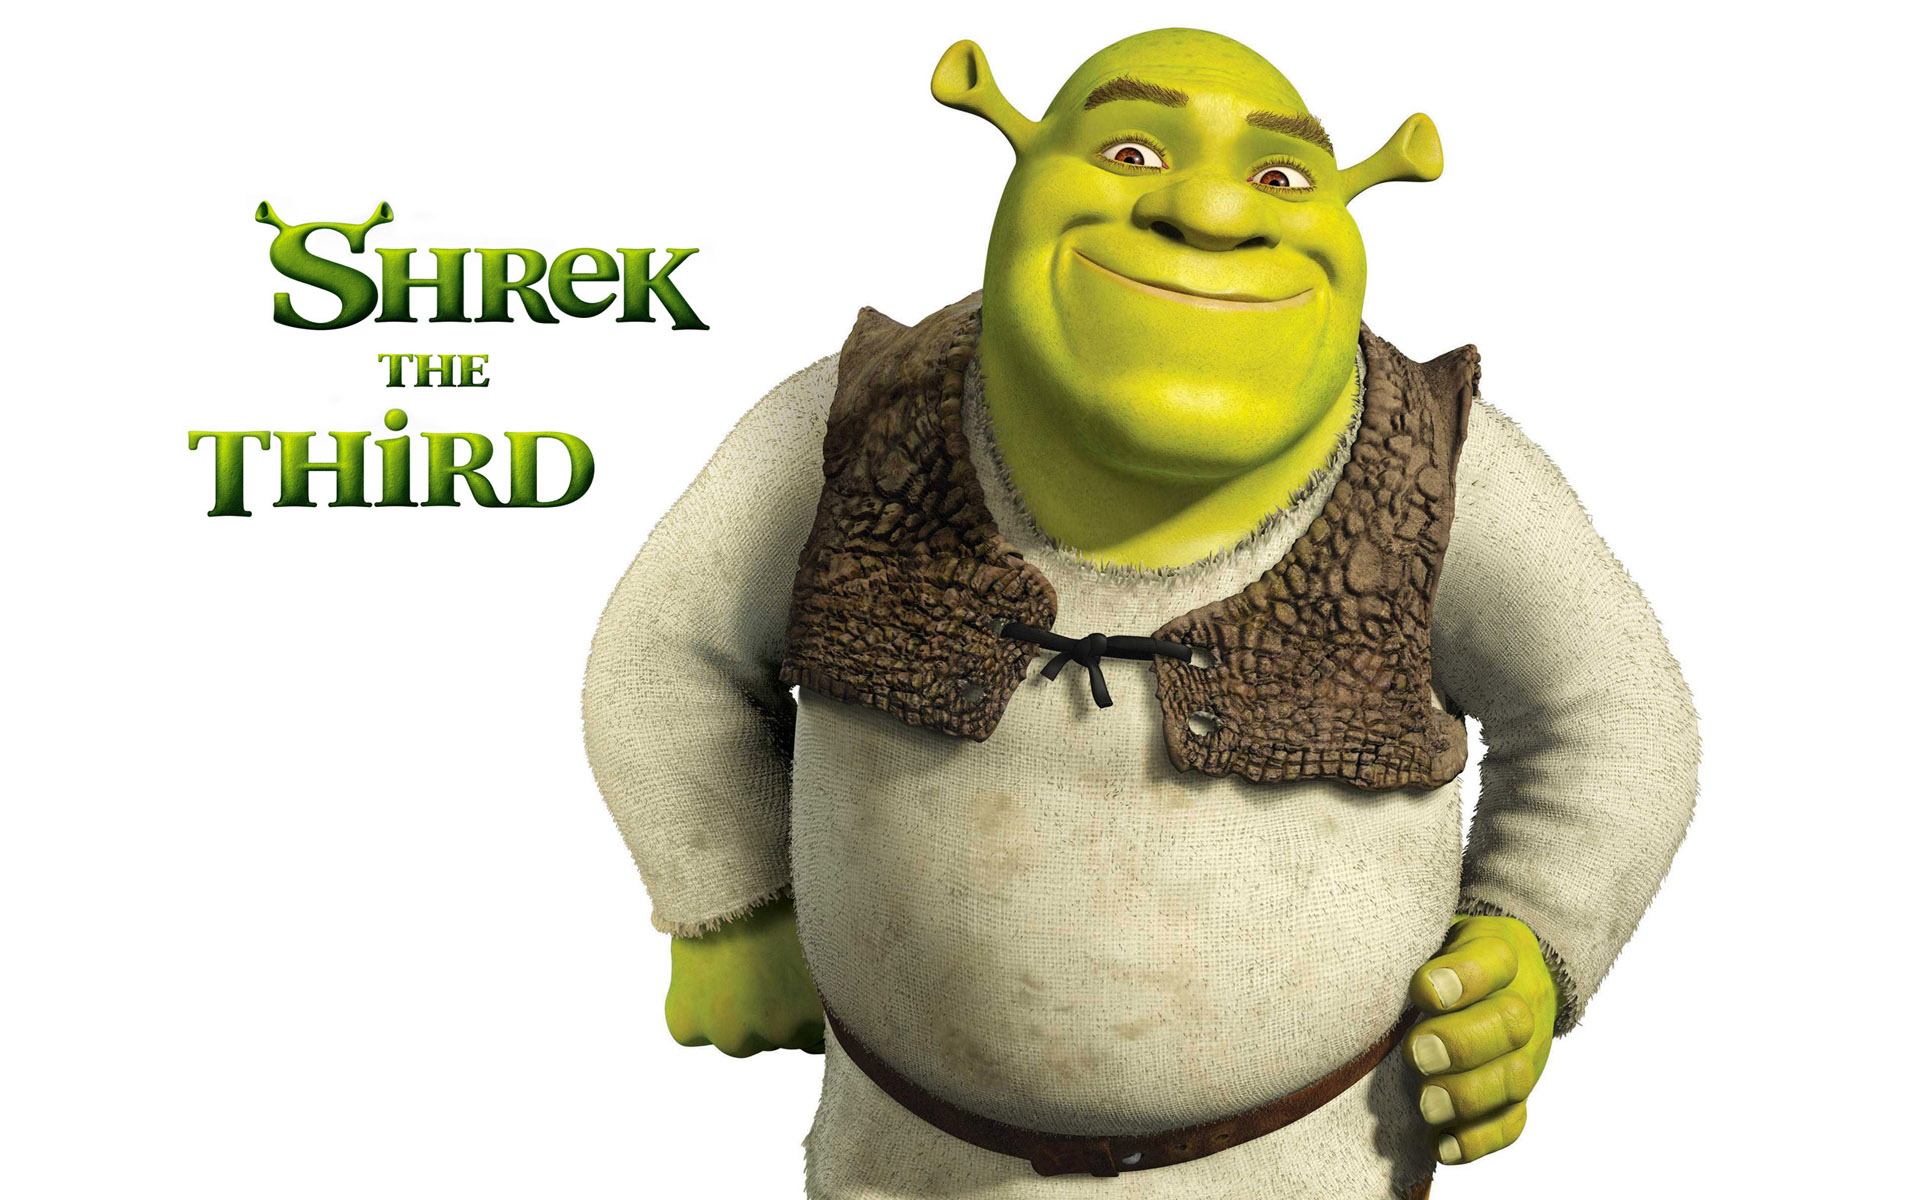 Shrek picture